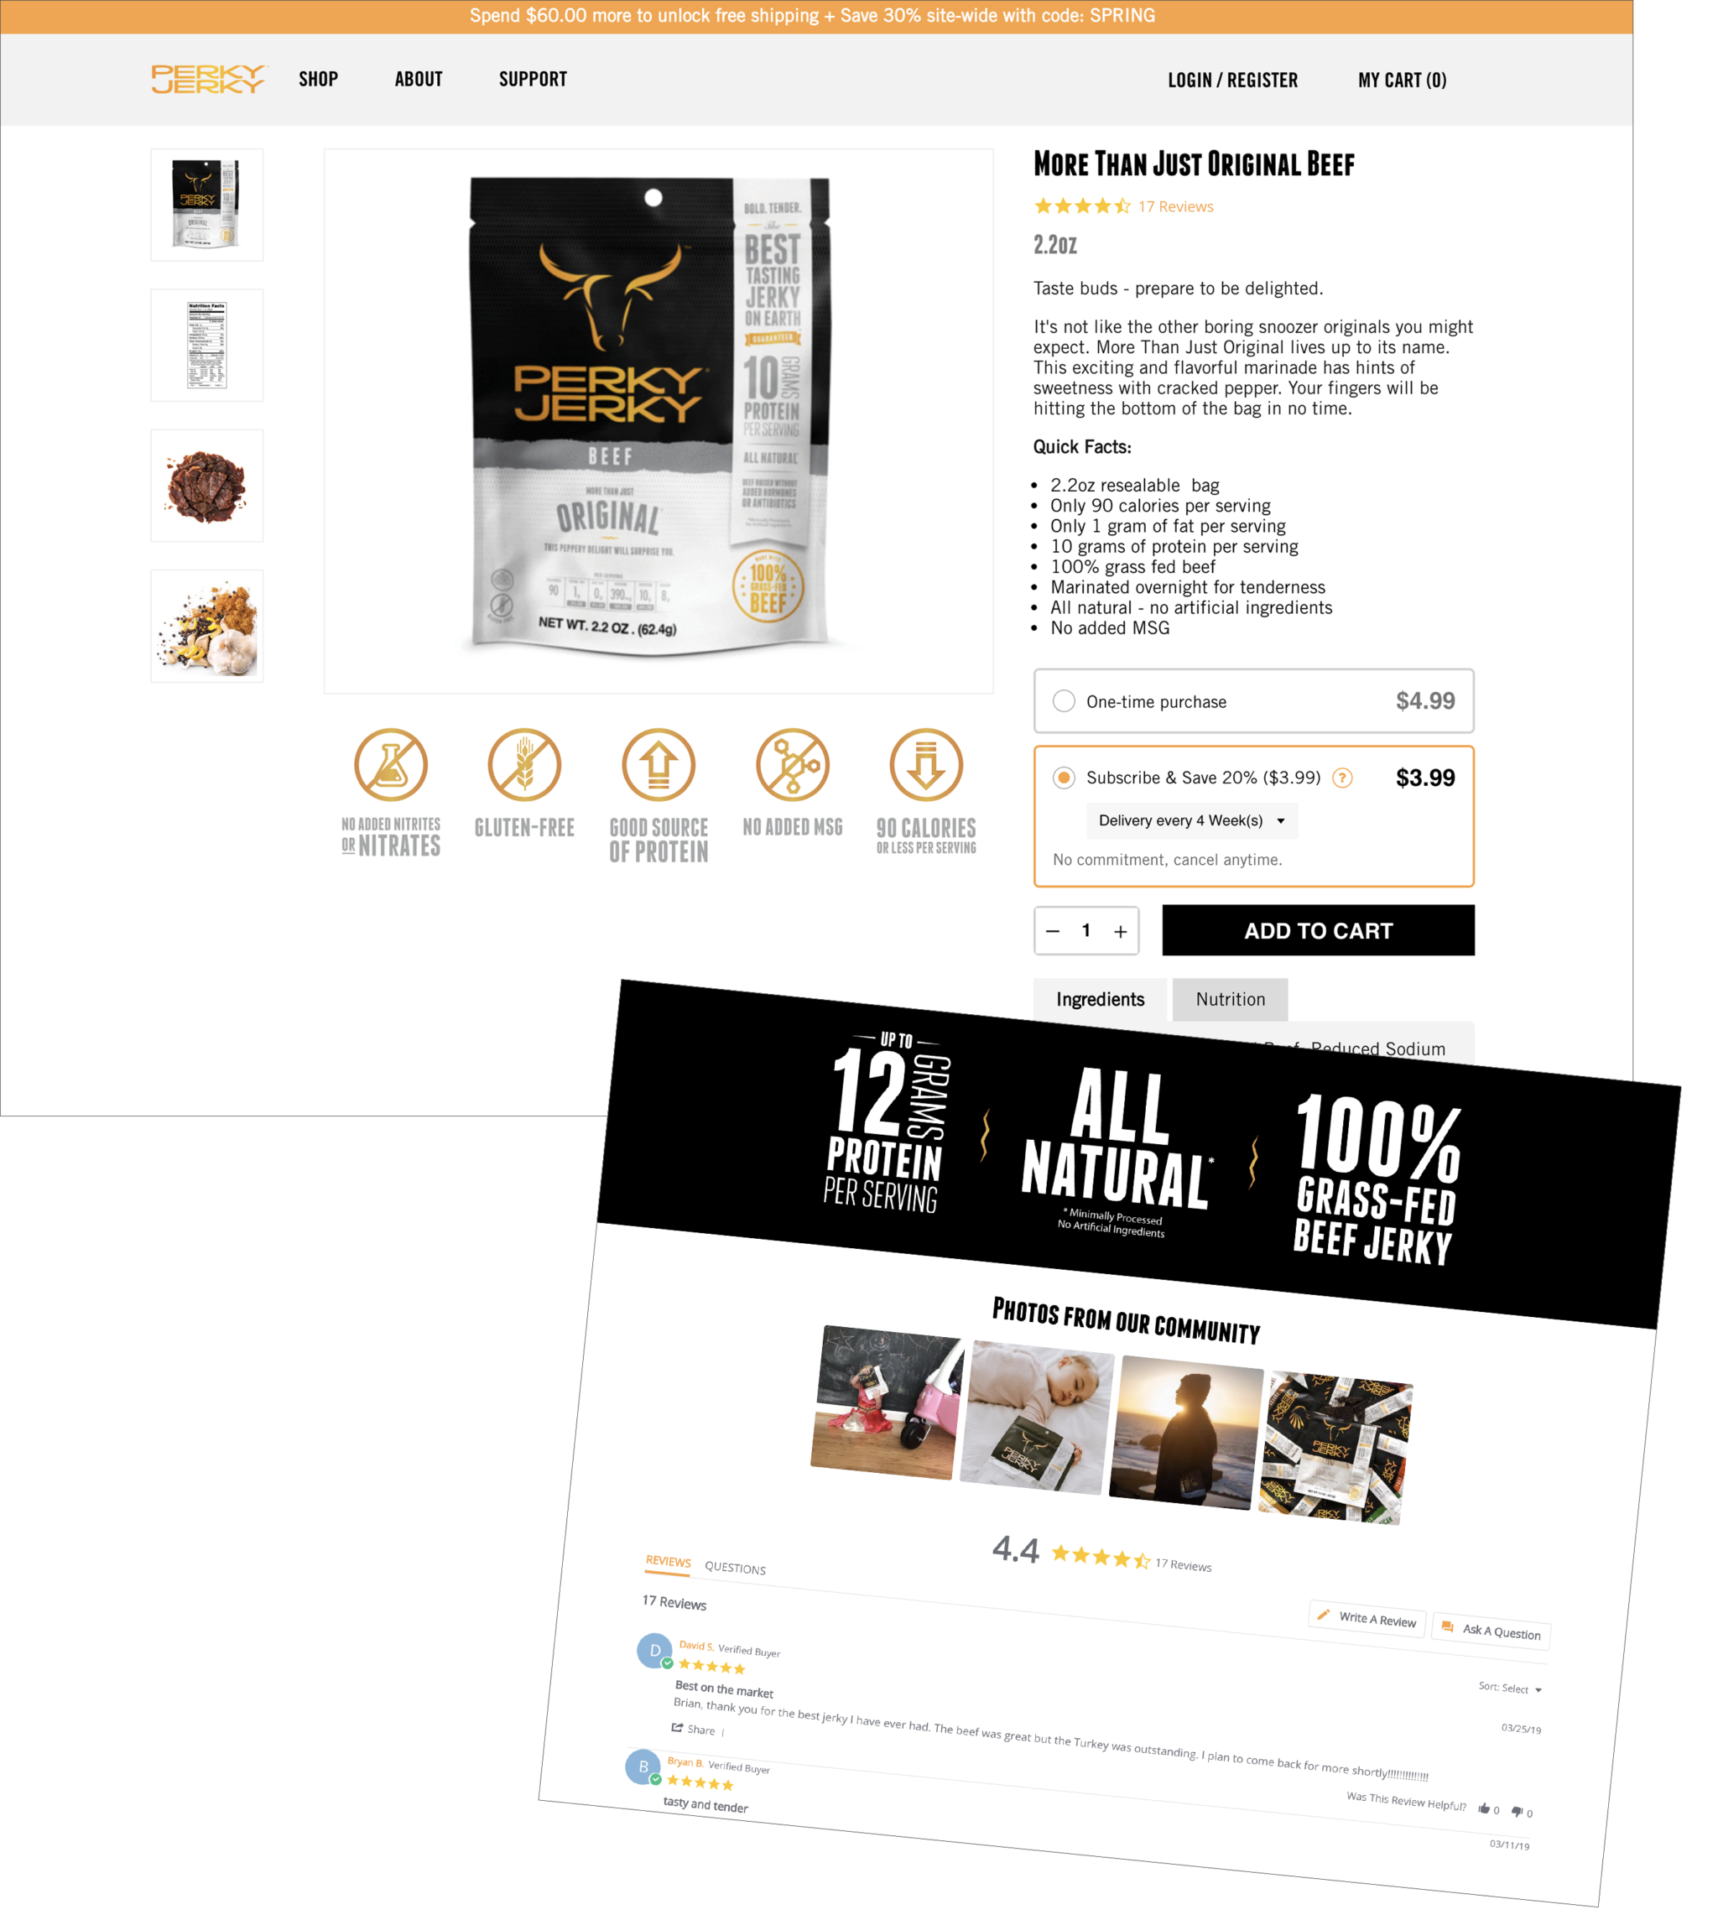 perky-jeryk-product-page